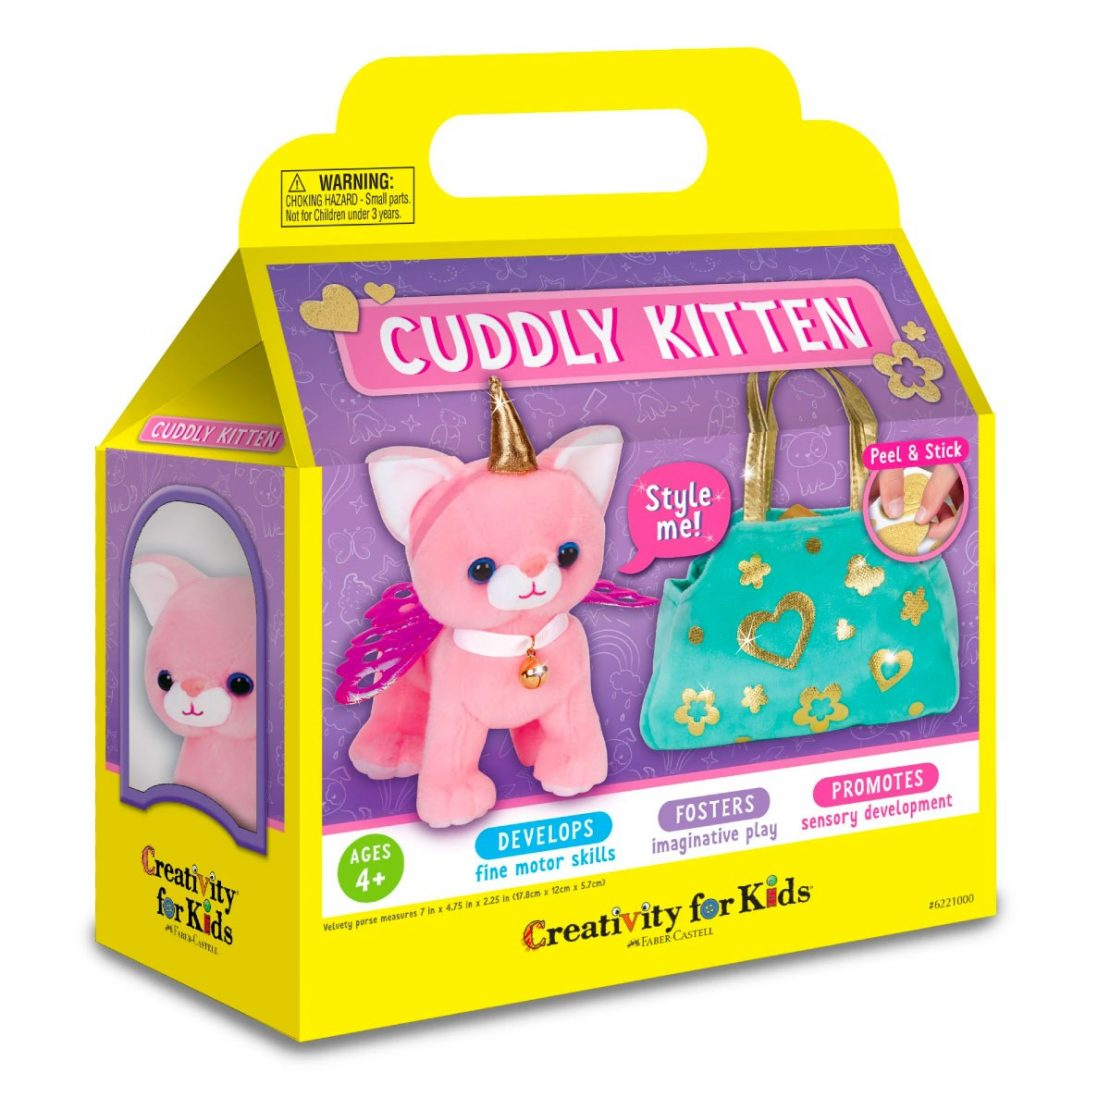 Cuddle Kitten kit from Creativity for Kids